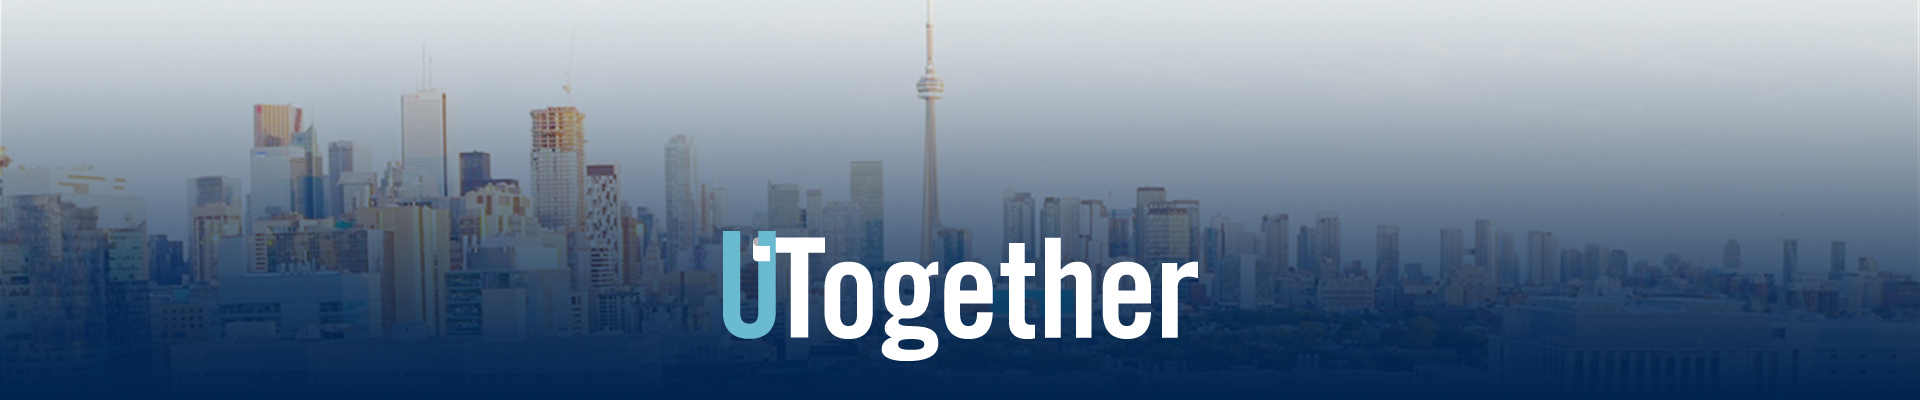 "The words ""UTogether"" displayed on top of the Toronto skyline."